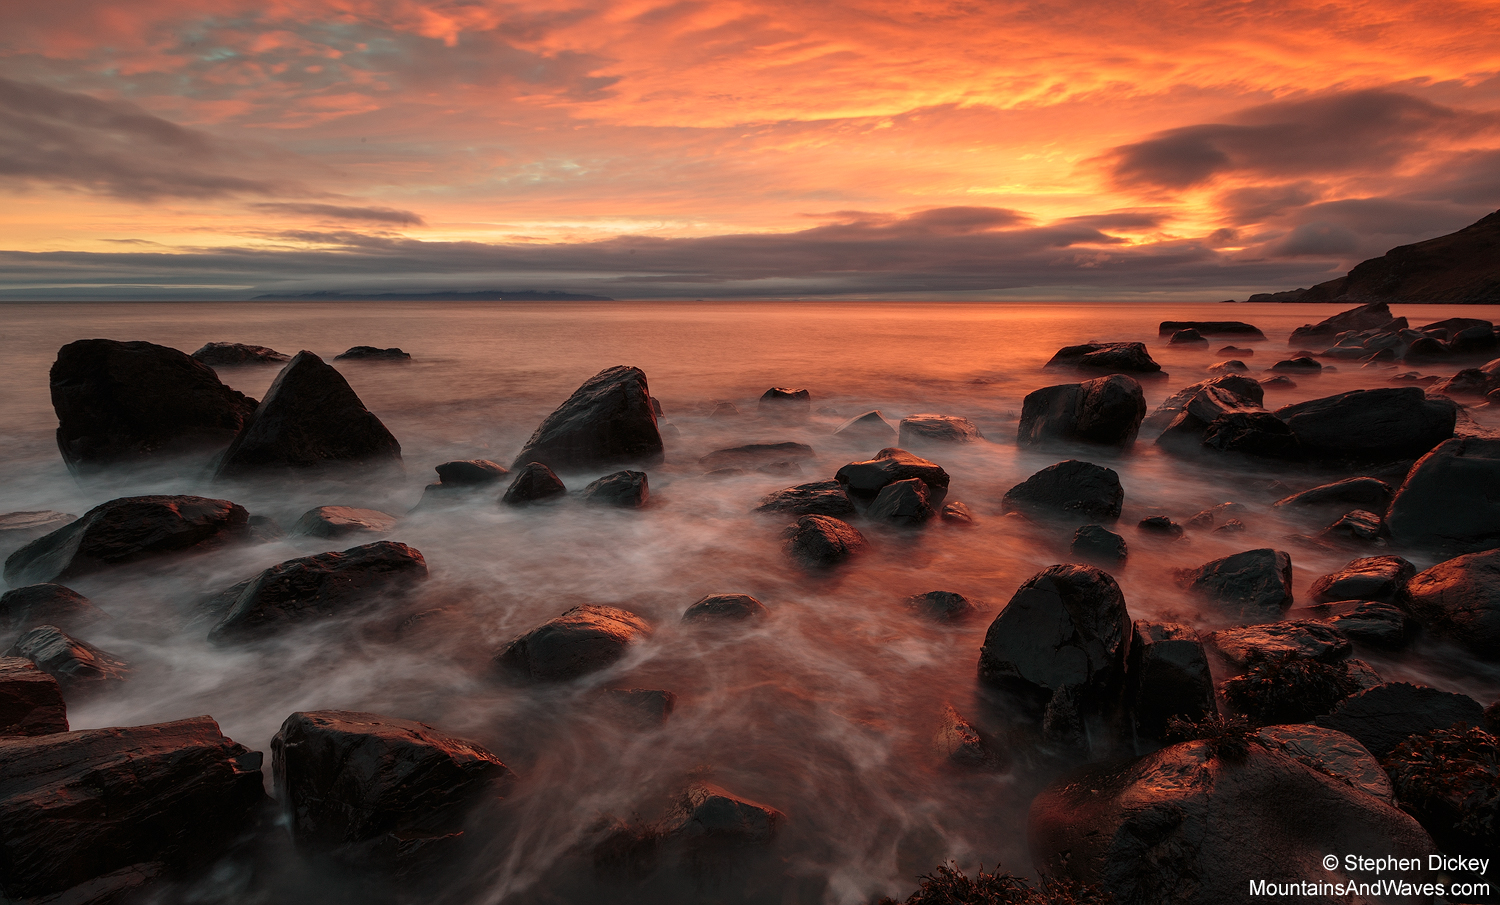 Murlough Bay, County Antrim - Northern Ireland Landscape Photography by Stephen Dickey  Canon 6D, Canon 16-35mm f2.8 L II @ 16mm, 15s @ f16, ISO 100,  Lee 1.2 soft-edge graduated neutral density filter, Manfrotto tripod